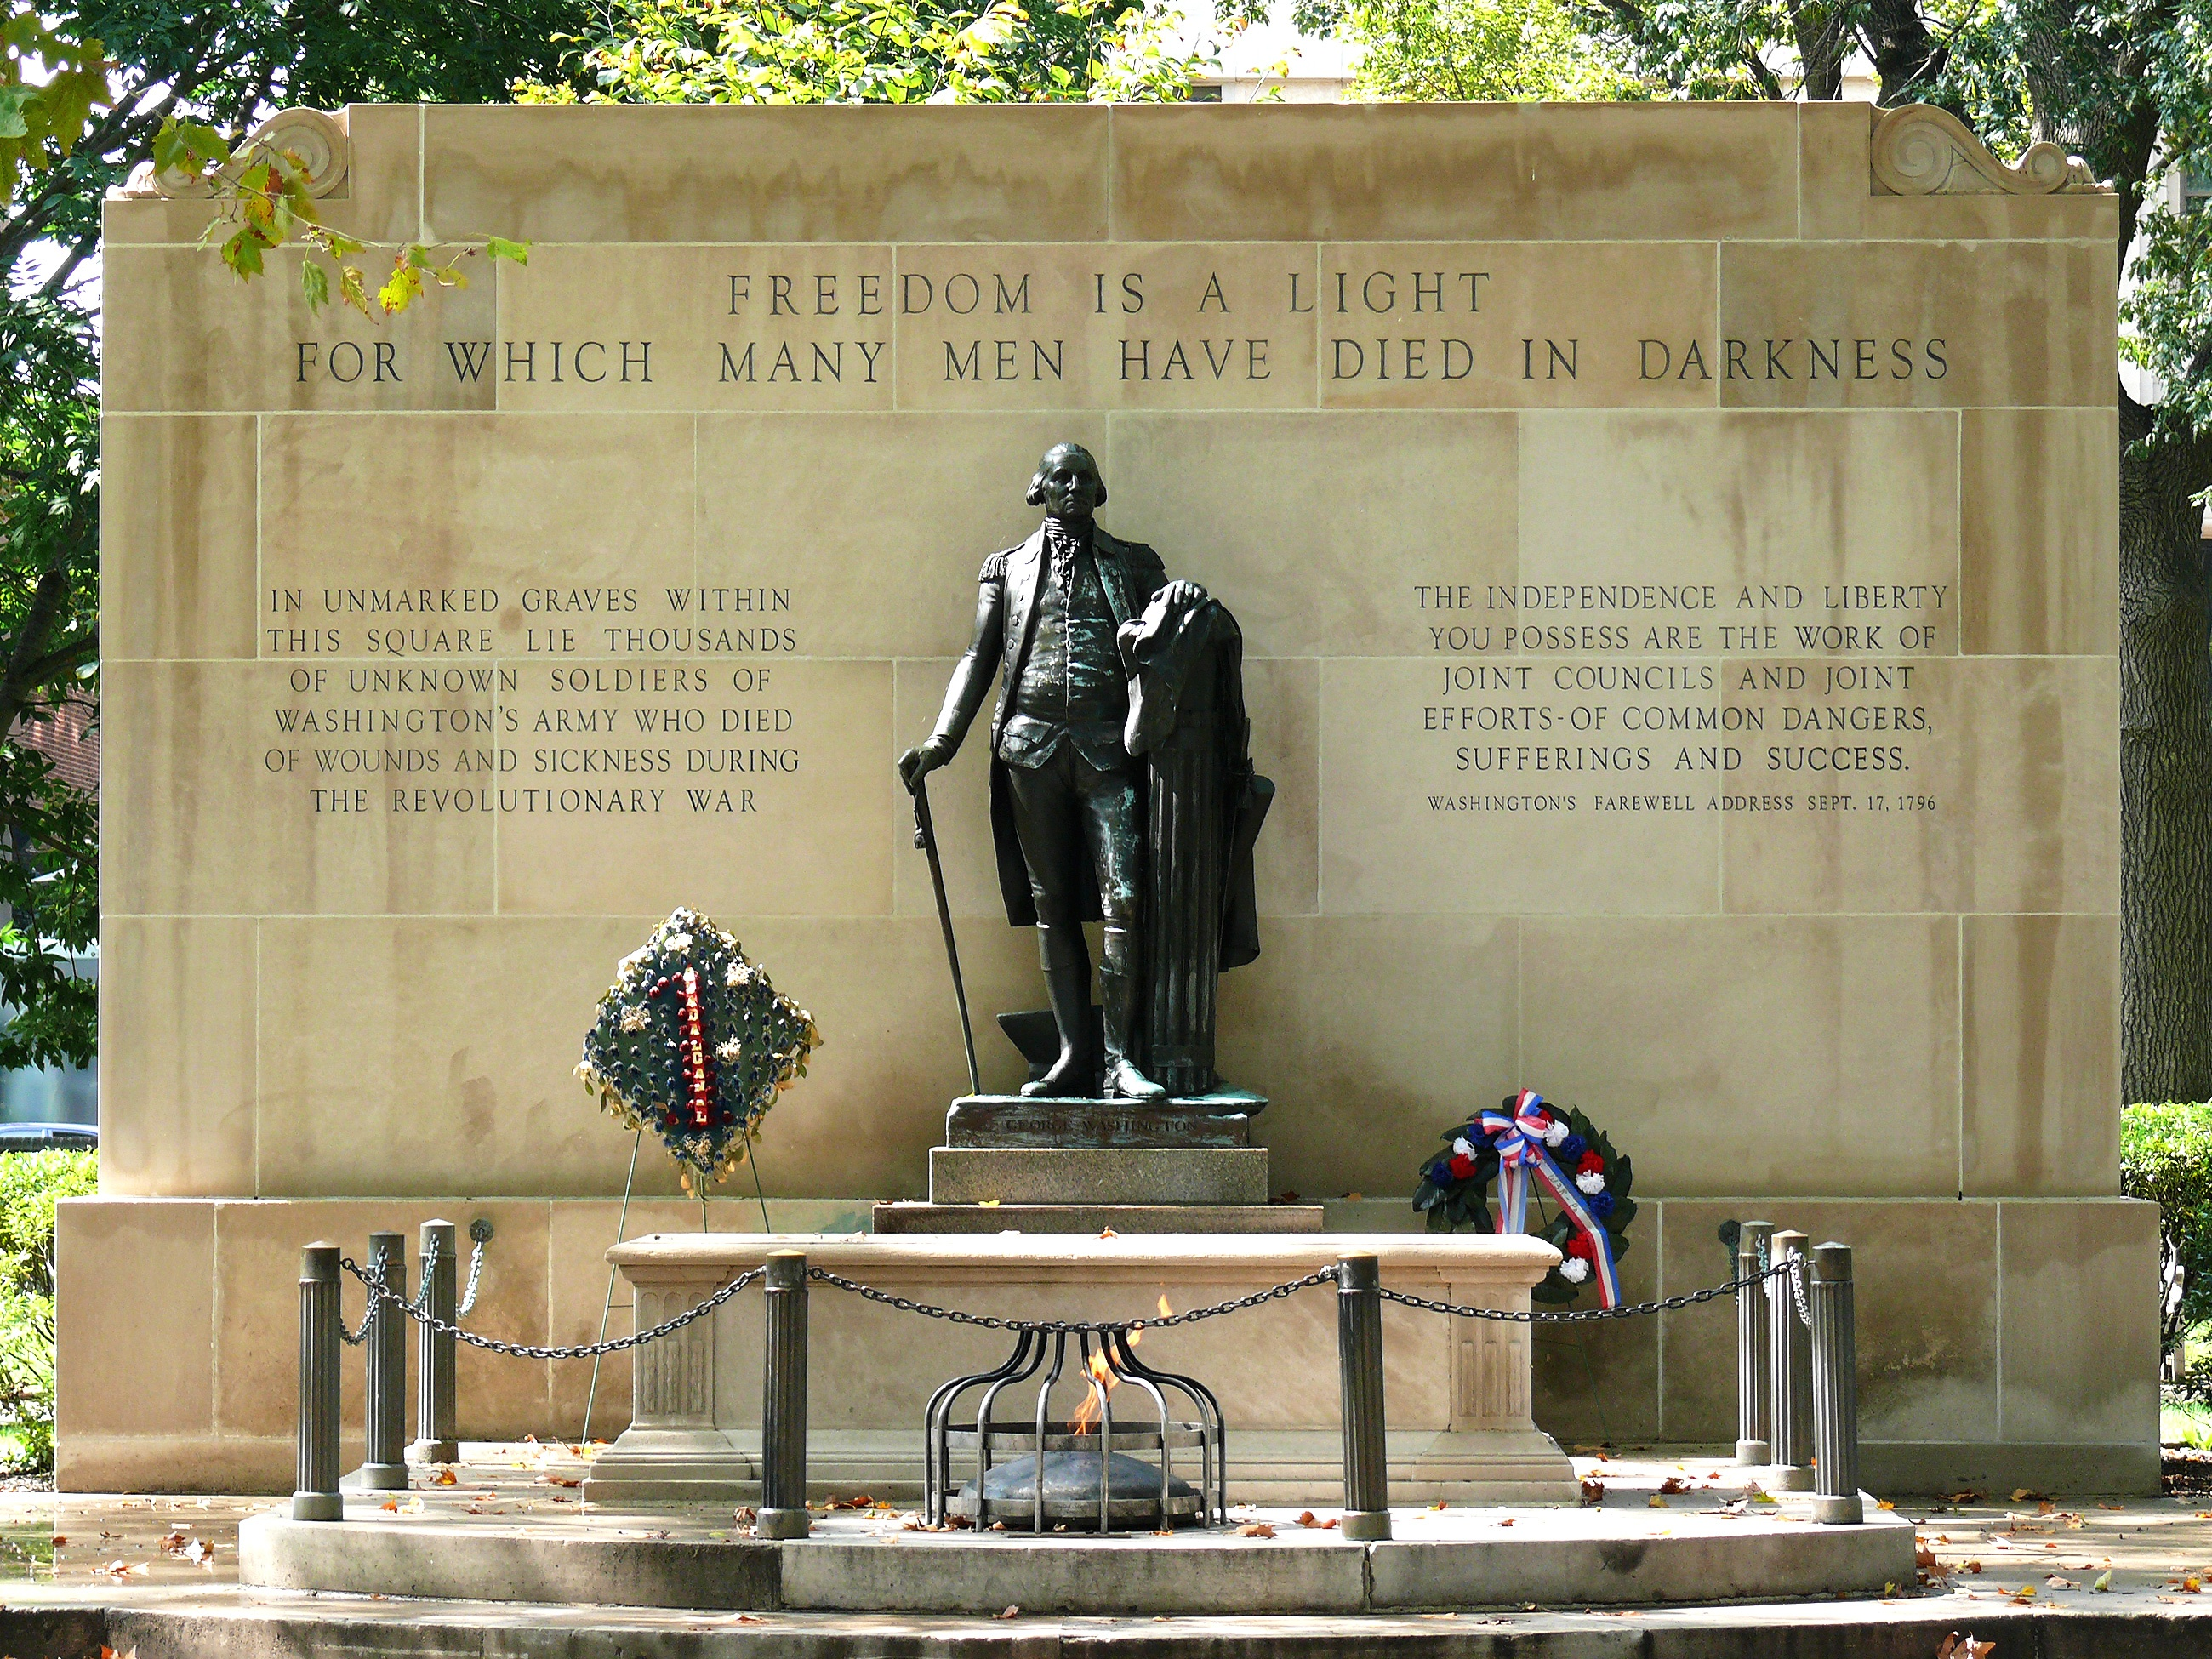 Standing over the tomb in a guardian-like pose is a bronze statue of George Washington.